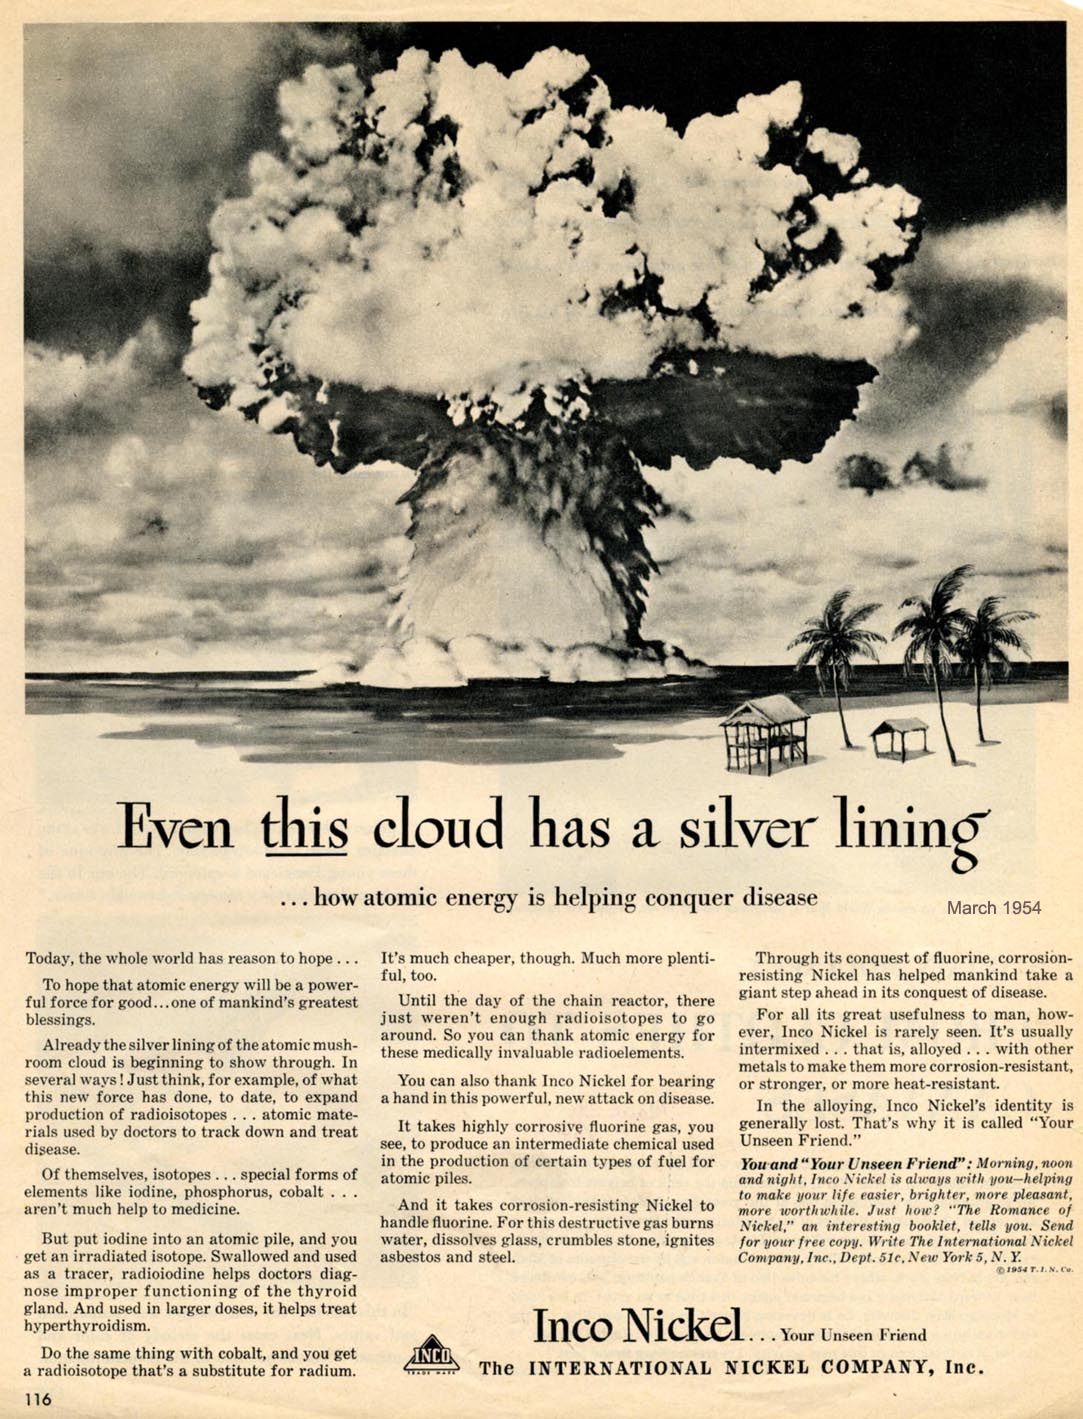 The Visual Primer Of Advertising Cliches Even This Cloud Has A Exploded Lighting Diagrams Prudential Industrial Labels 1954 Atom Bomb Cold War Desert Island Explosions Health Inco Nickel Plating For Cars Medical Palm Trees